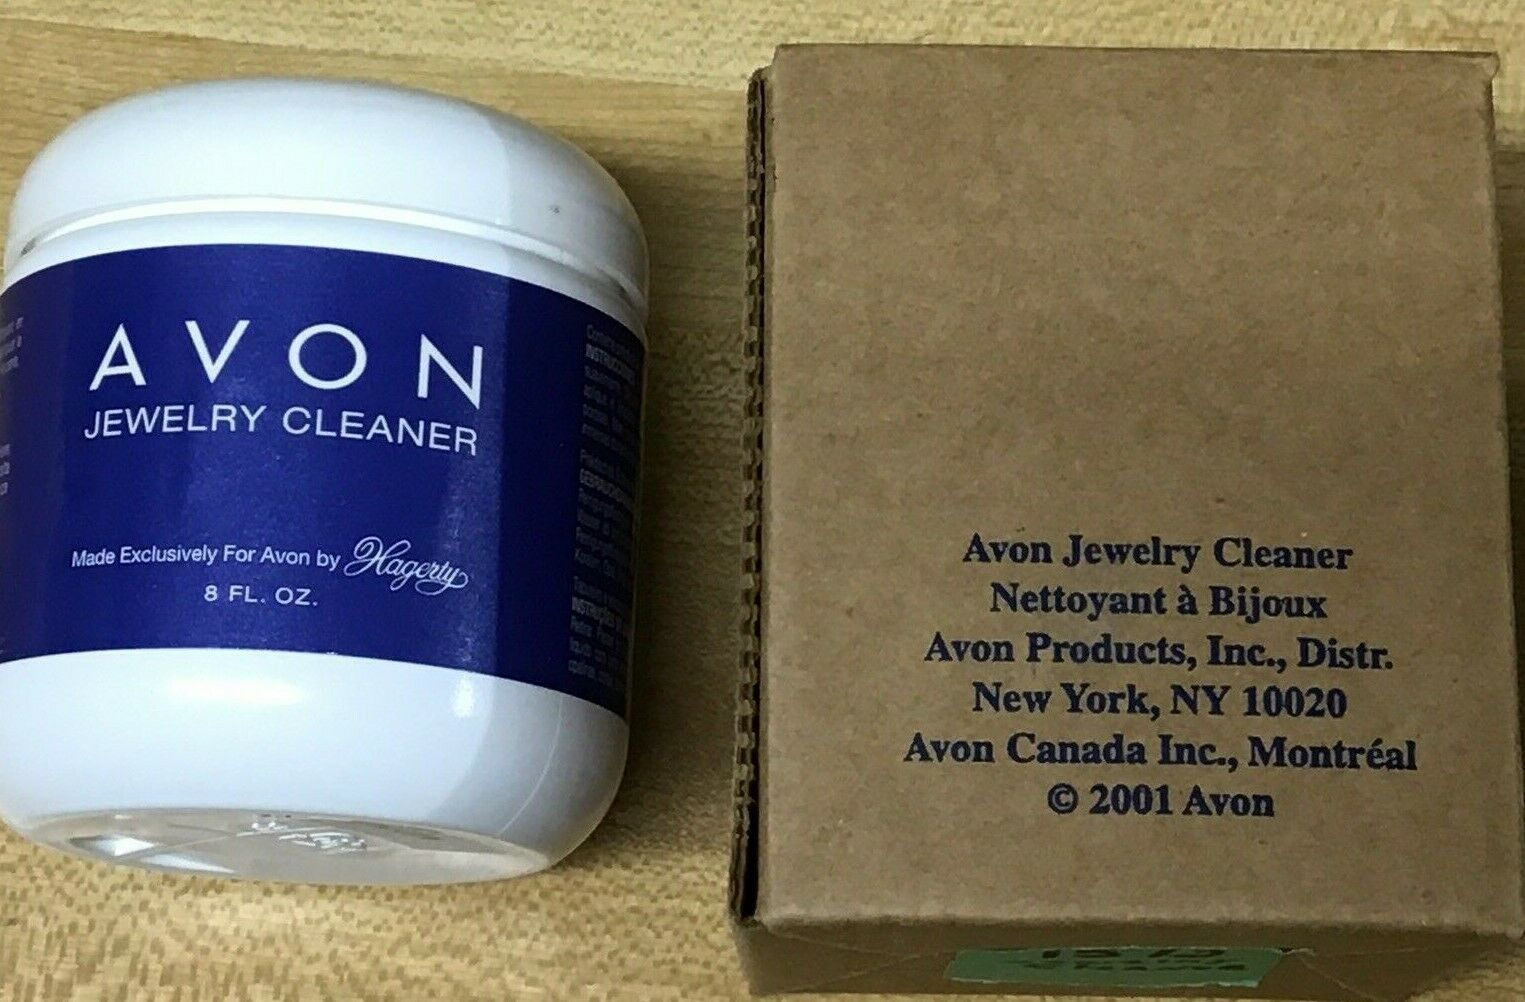 Avon Jewelry Cleaner By Hagerty 8 Fl Oz Sealed With Brush 20